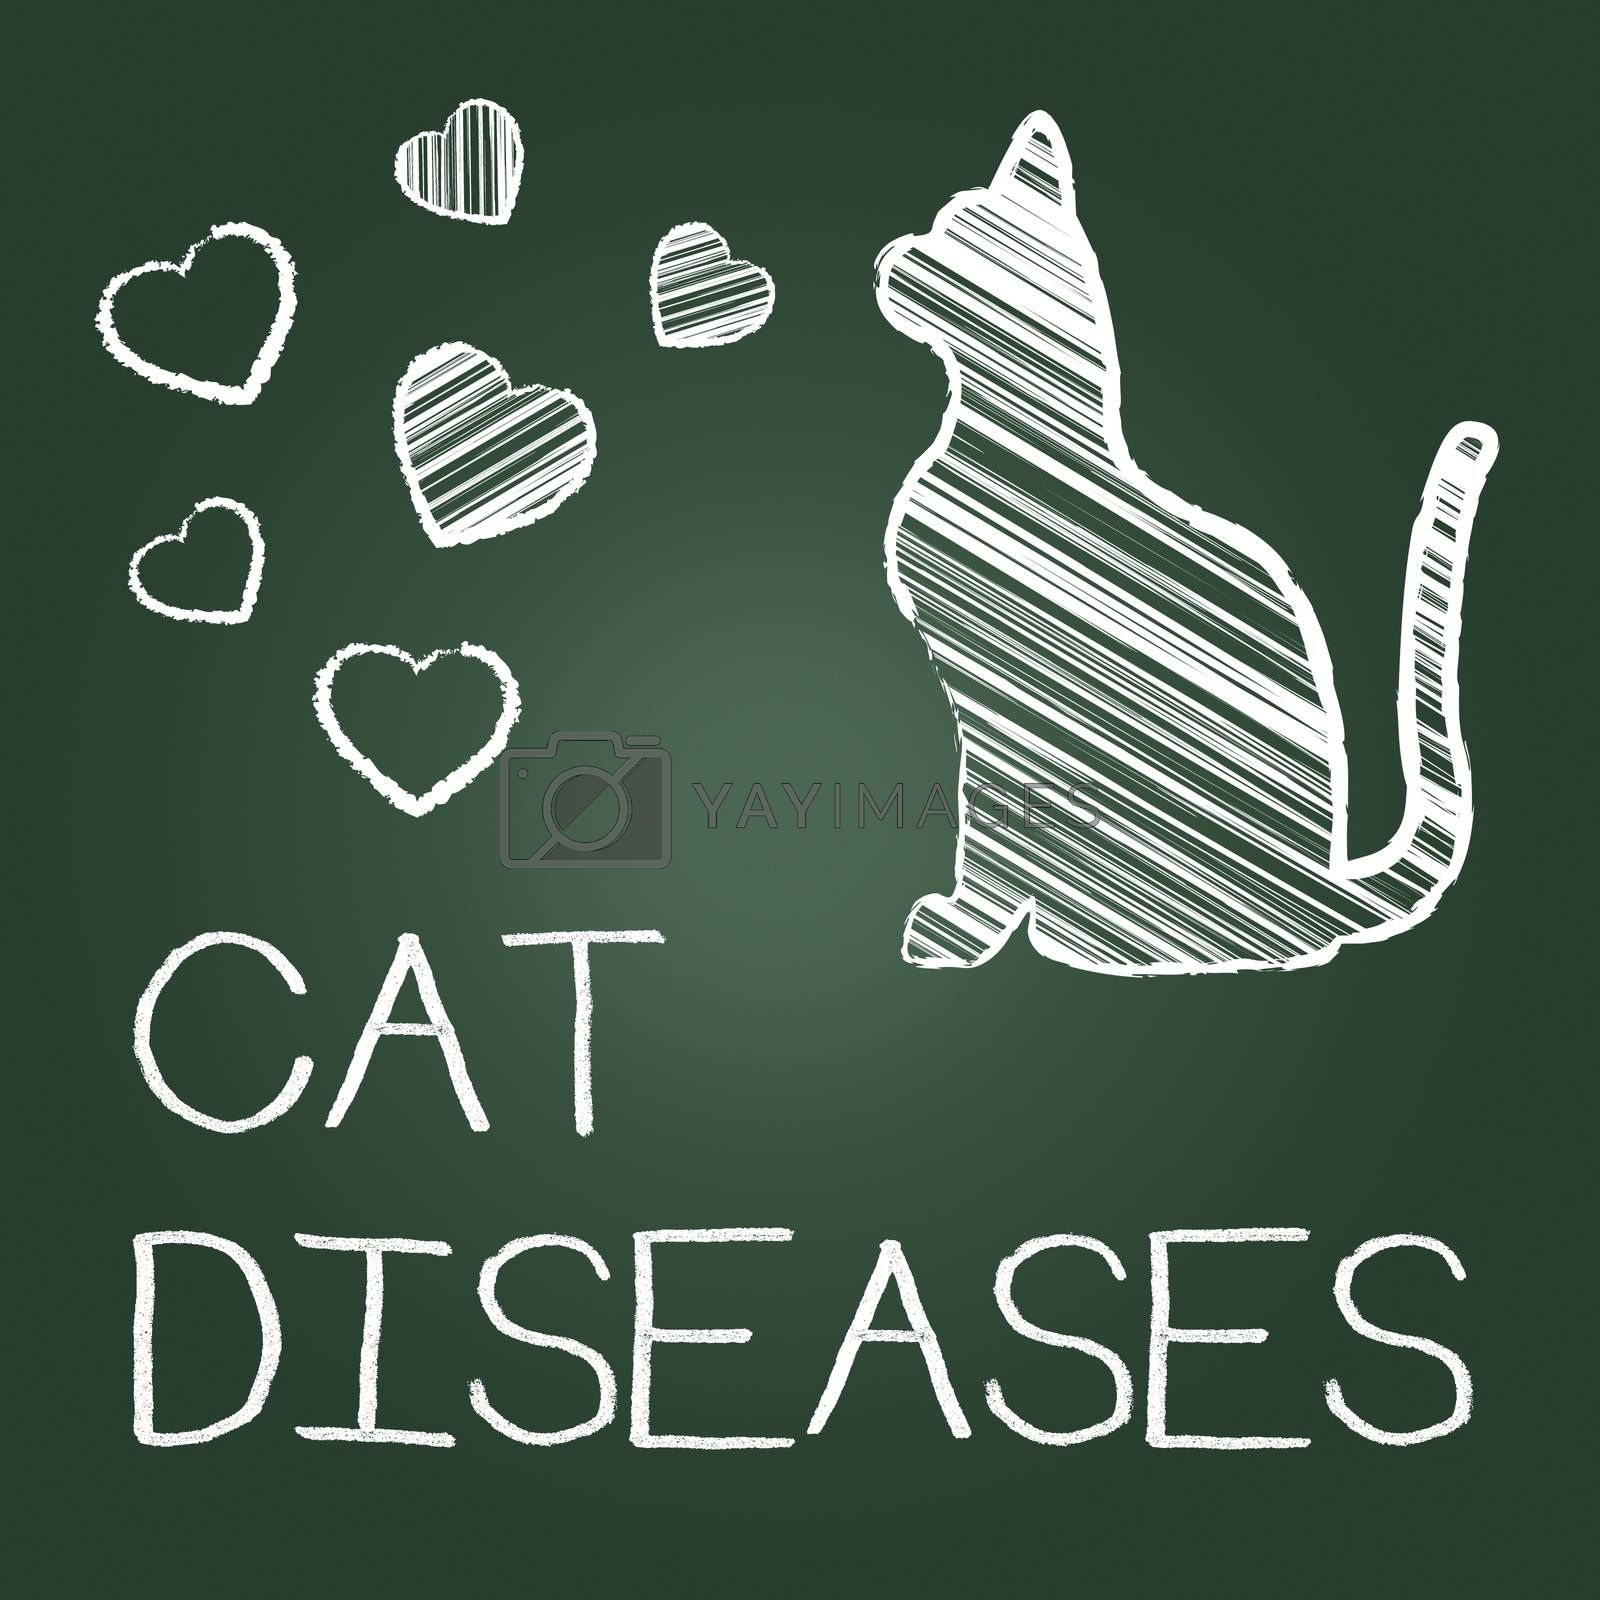 Cat Diseases Meaning Kitten Puss And Physician